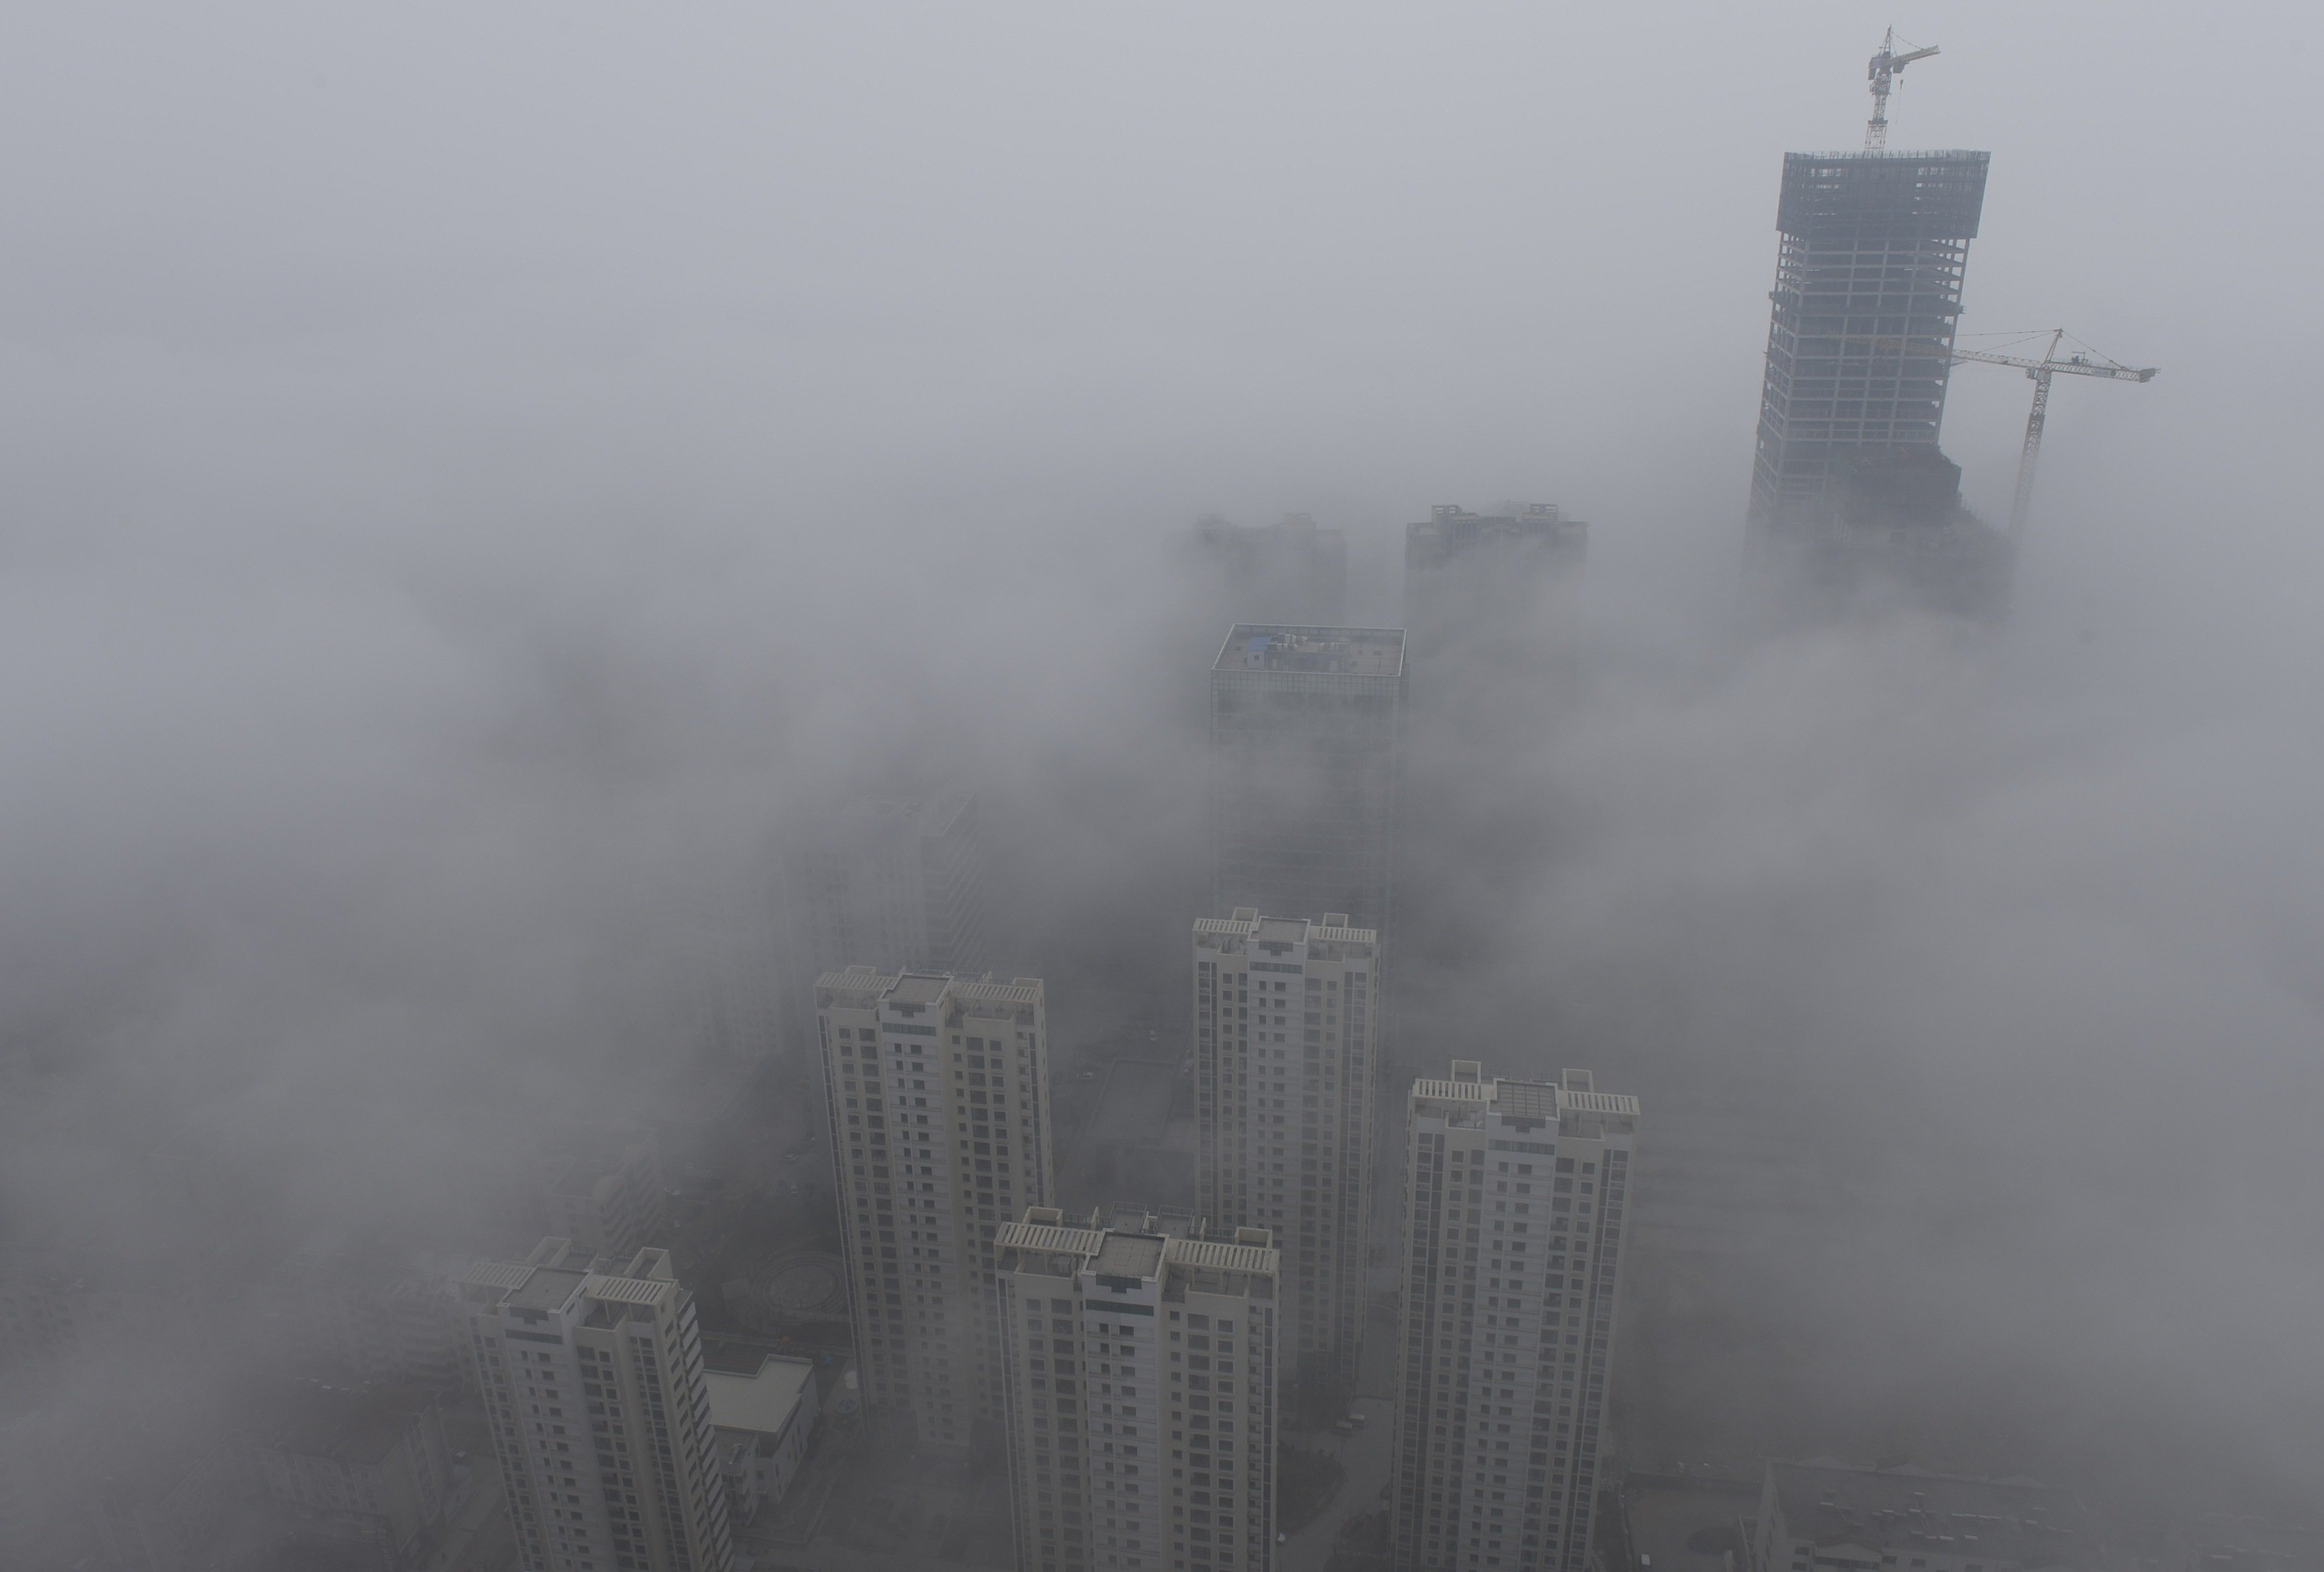 Buildings are seen shrouded in heavy haze at Qingdao development zone, Shandong province, February 25, 2014.